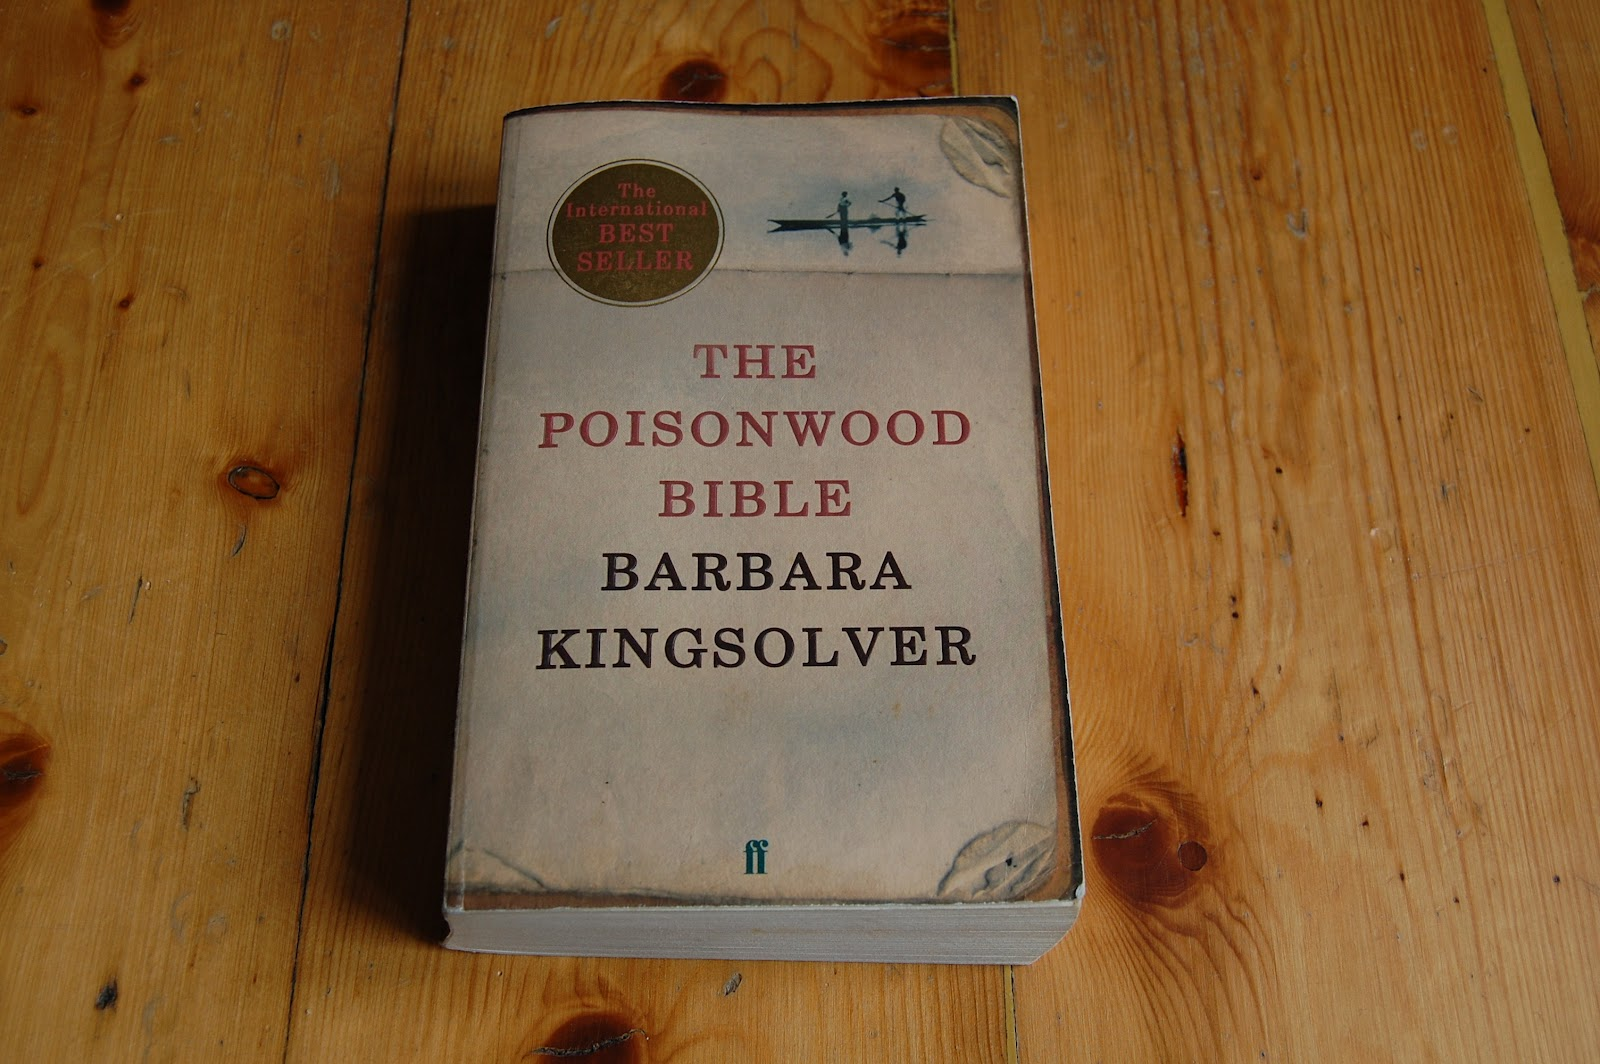 Significant Events- The Poisonwood Bible